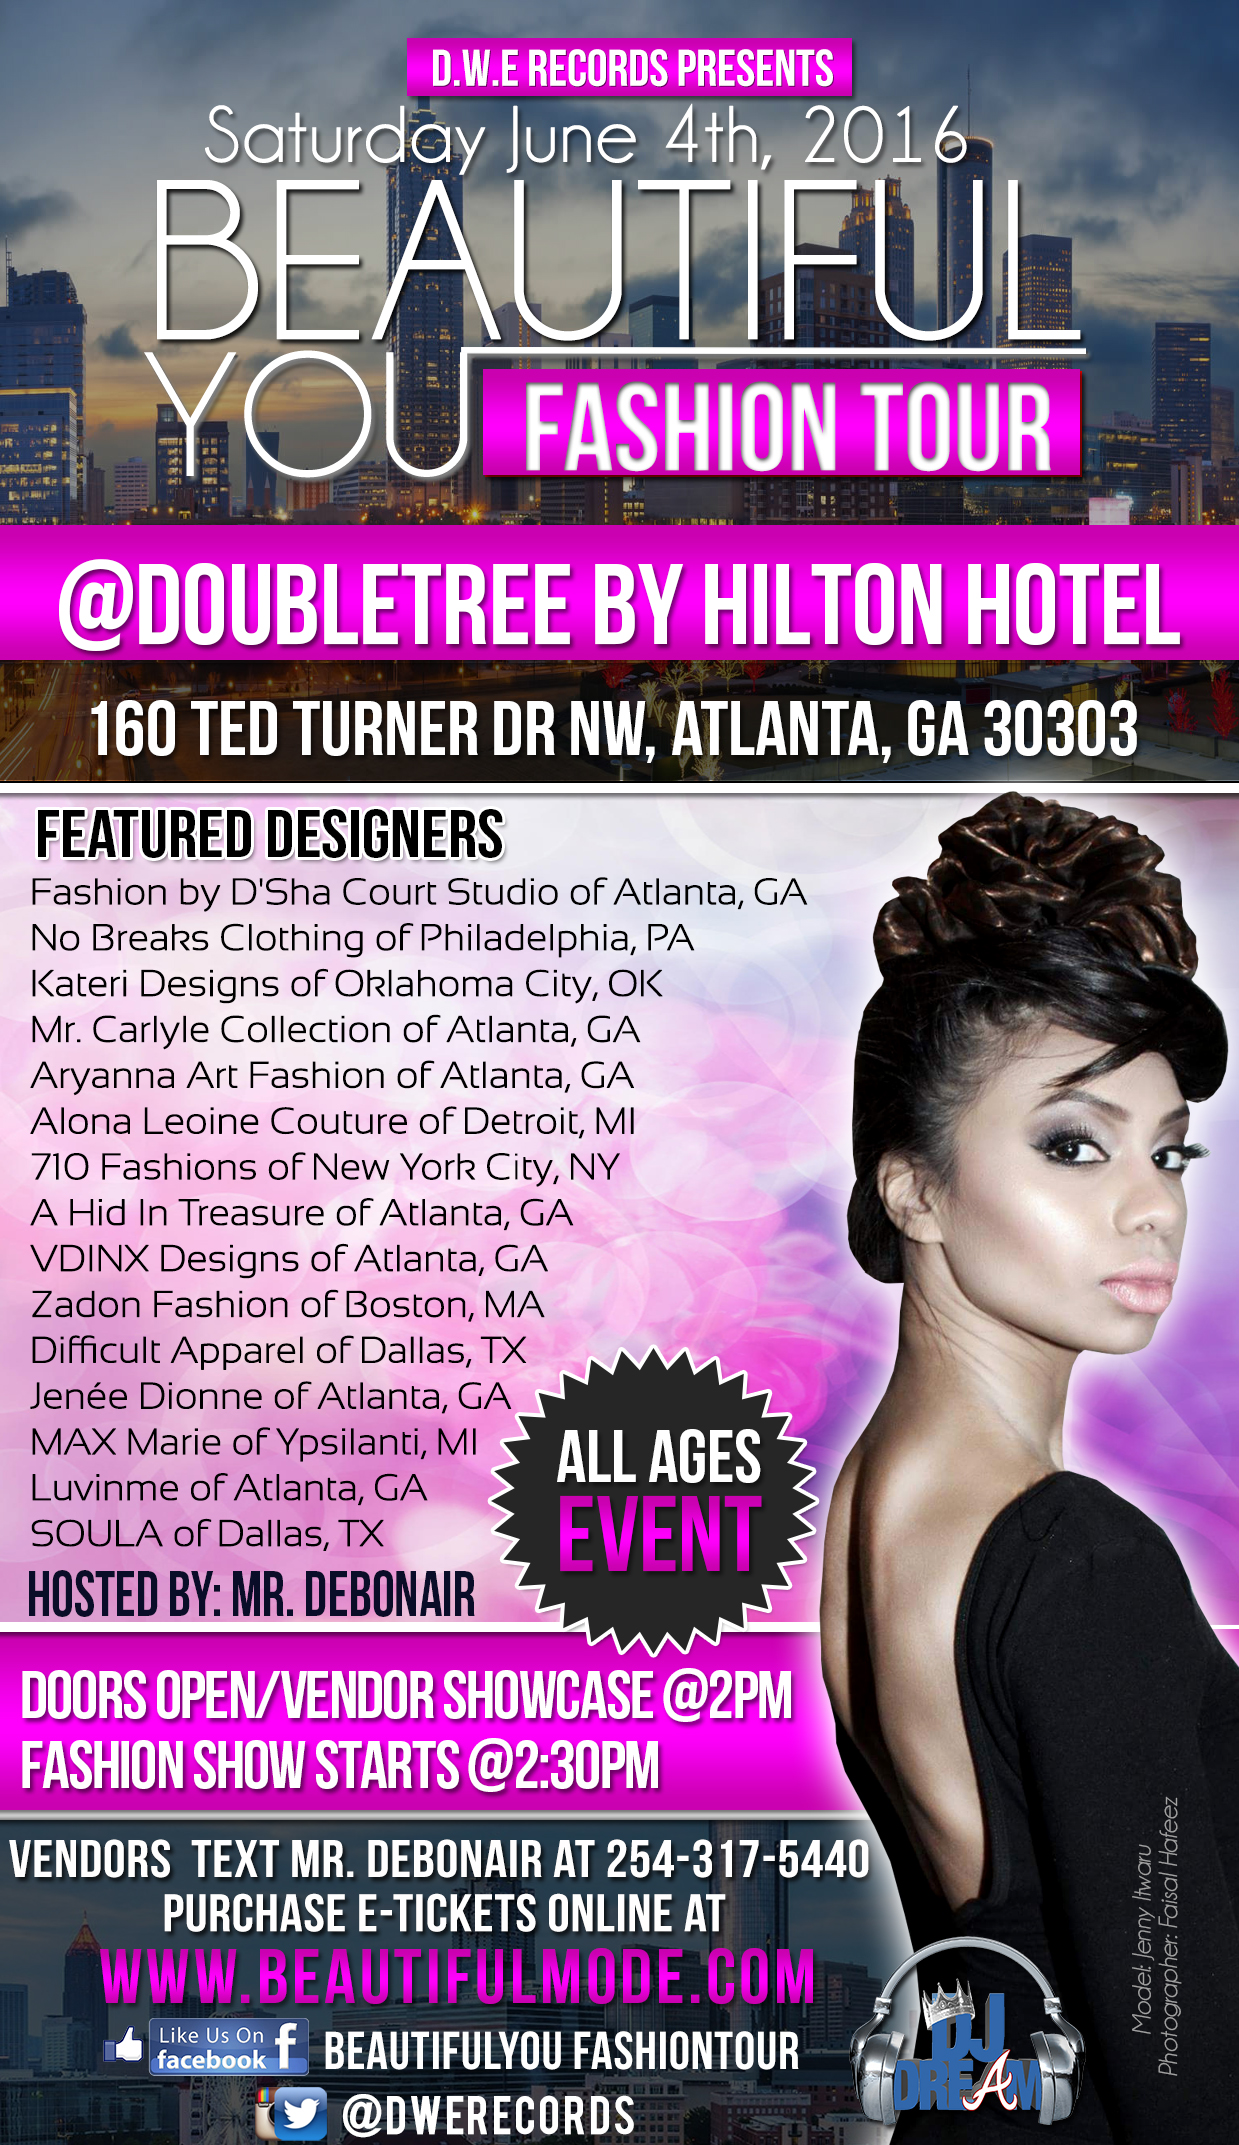 Atlanta, GA</a><br> by <a href='/profile/Mr-Debonair-BYFT-Director/'>Mr. Debonair BYFT Director</a>